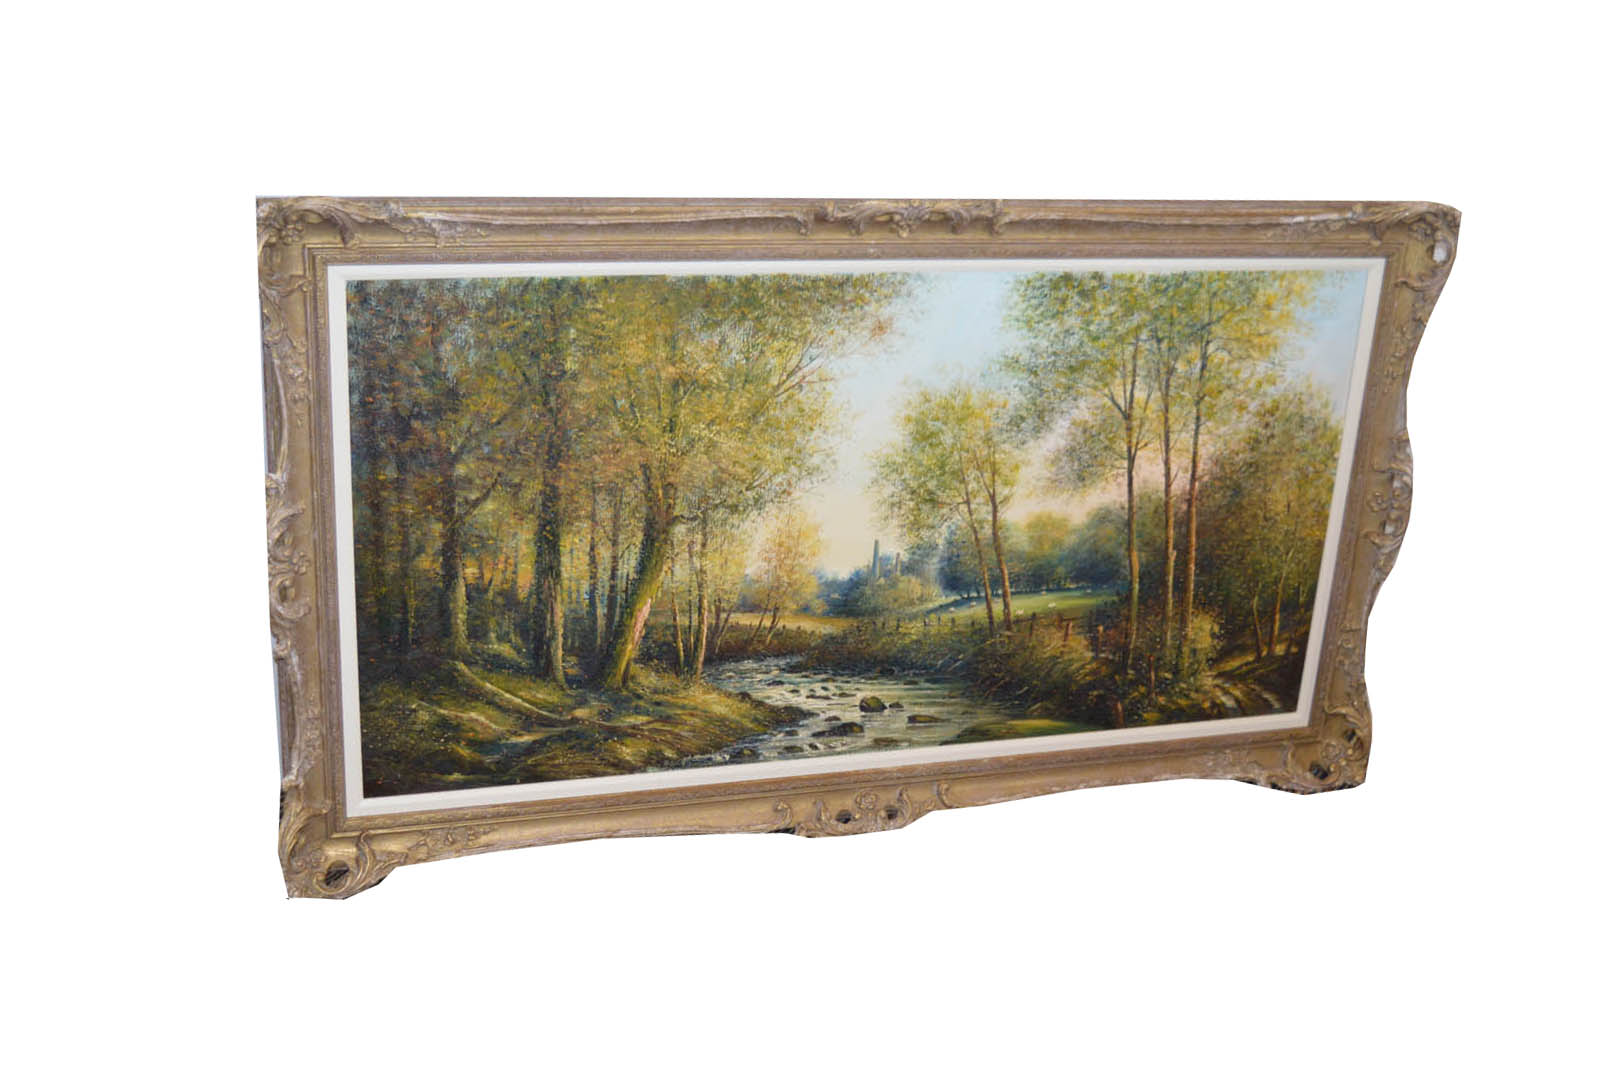 Lot 665 - A Large Oil Painting 'Woodland and River Scene' - W Cunnginham